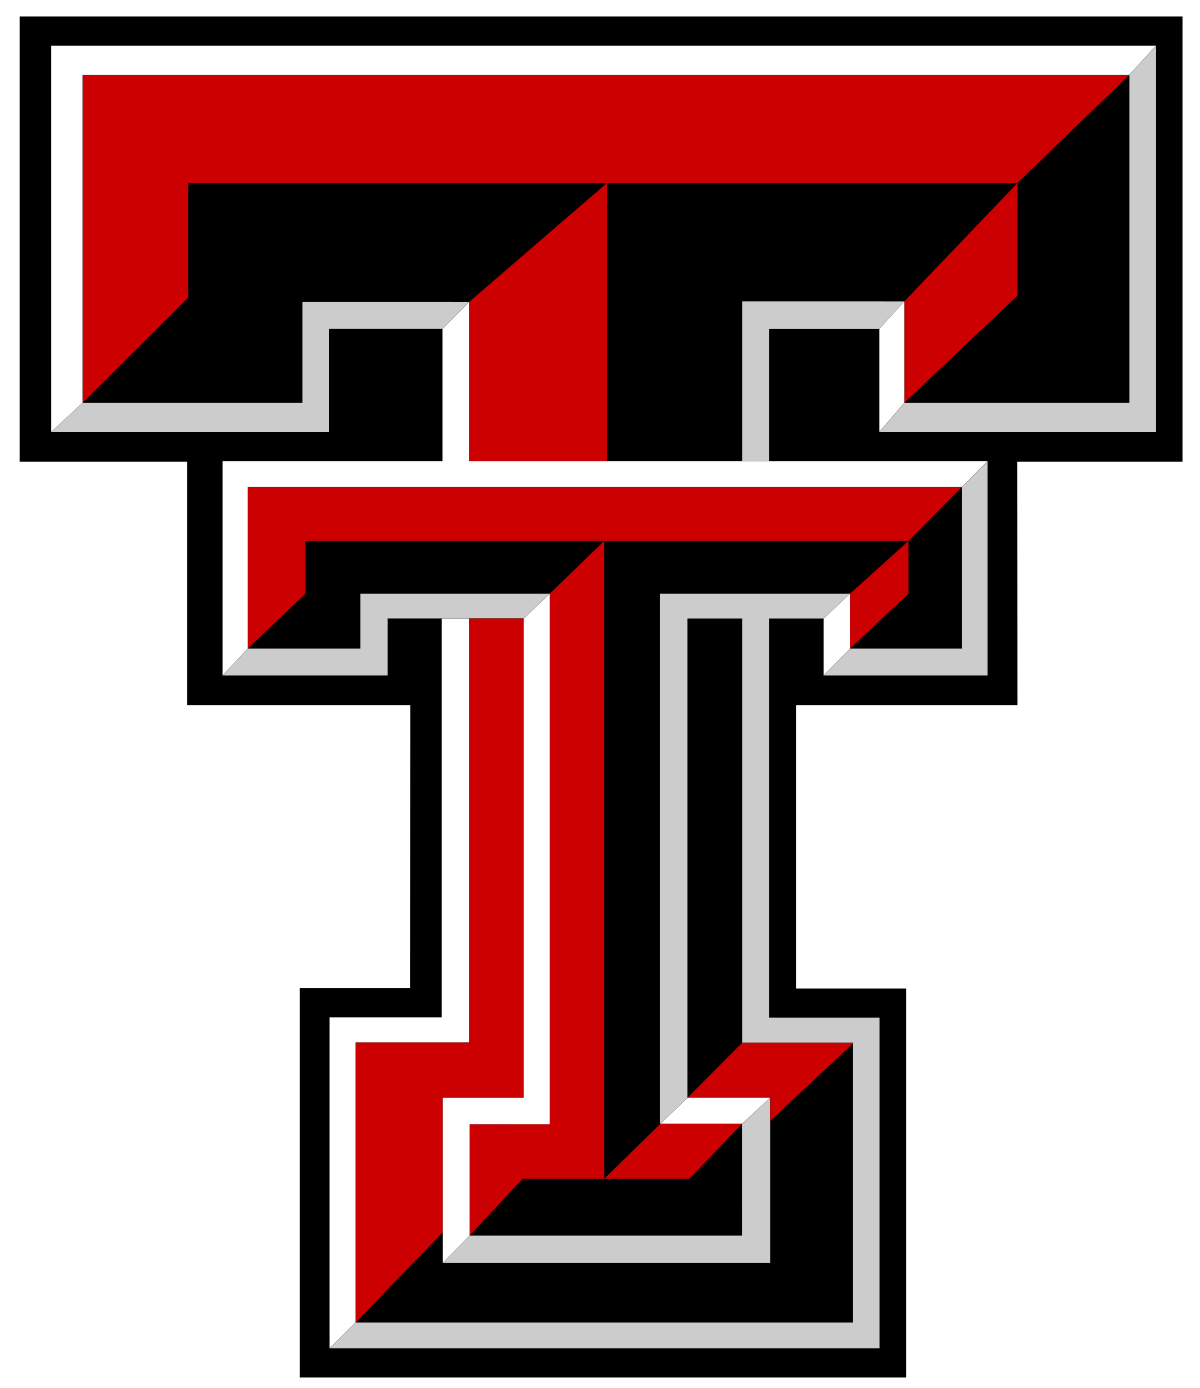 Cross country logo clipart svg royalty free stock Texas Tech Red Raiders - Wikipedia svg royalty free stock